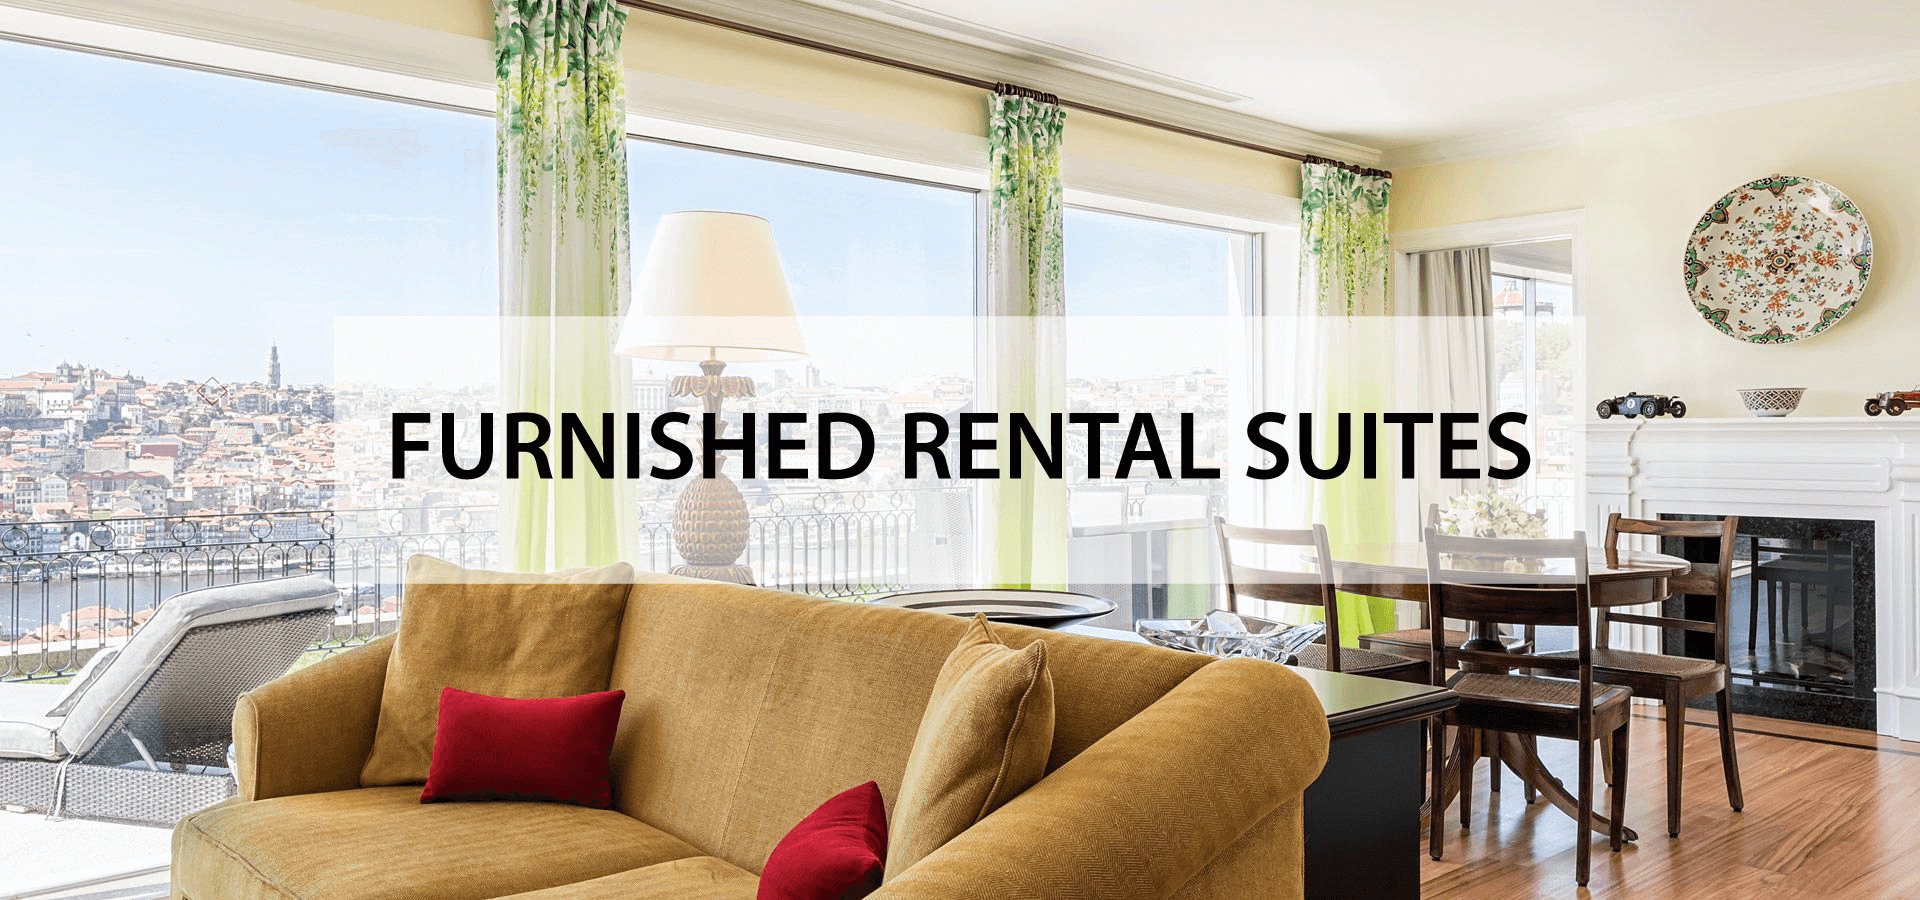 Furnished Rental Suites